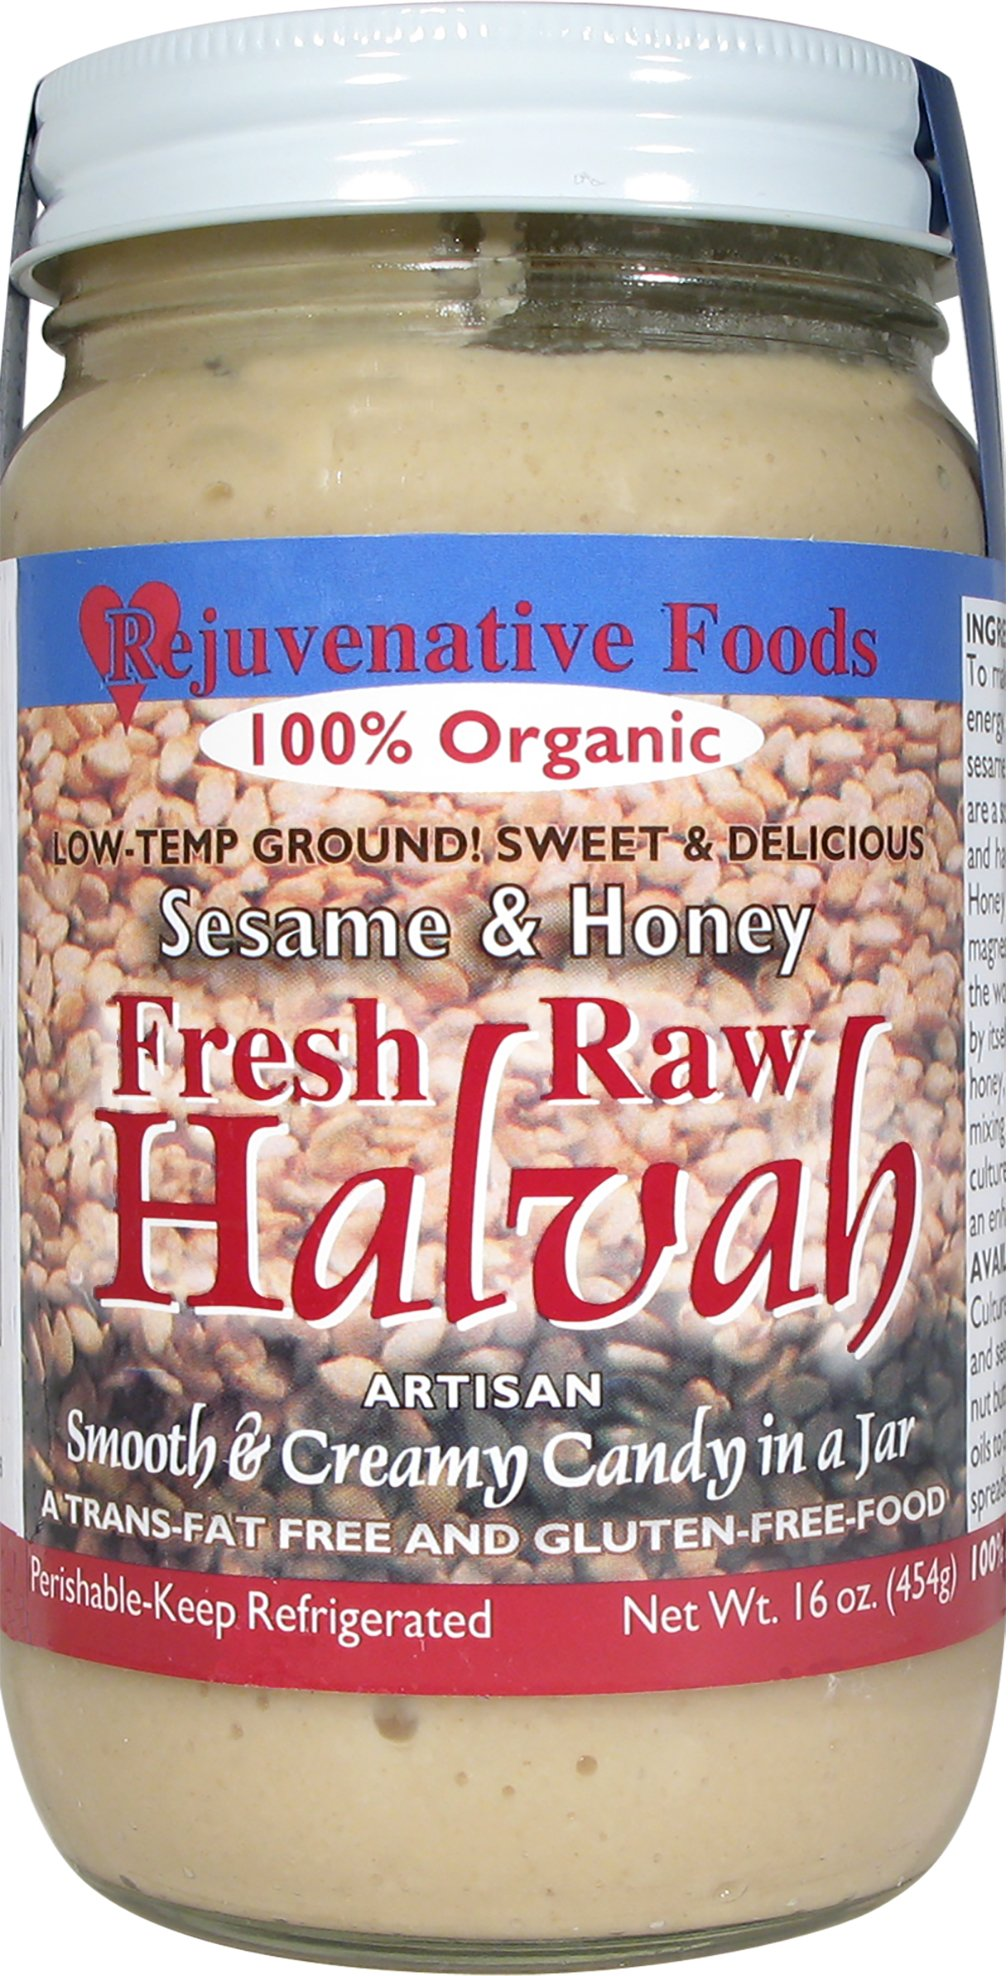 Fresh Raw Organic Traditional Halvah Pure Rejuvenative Foods Candy-In-Glass Smooth-Creamy Low-Temp-Ground Artisan-Ayurvedic Vitamin-Protein-Antioxidant-Mineral-Nutrition Certified Organic by Rejuvenative Foods